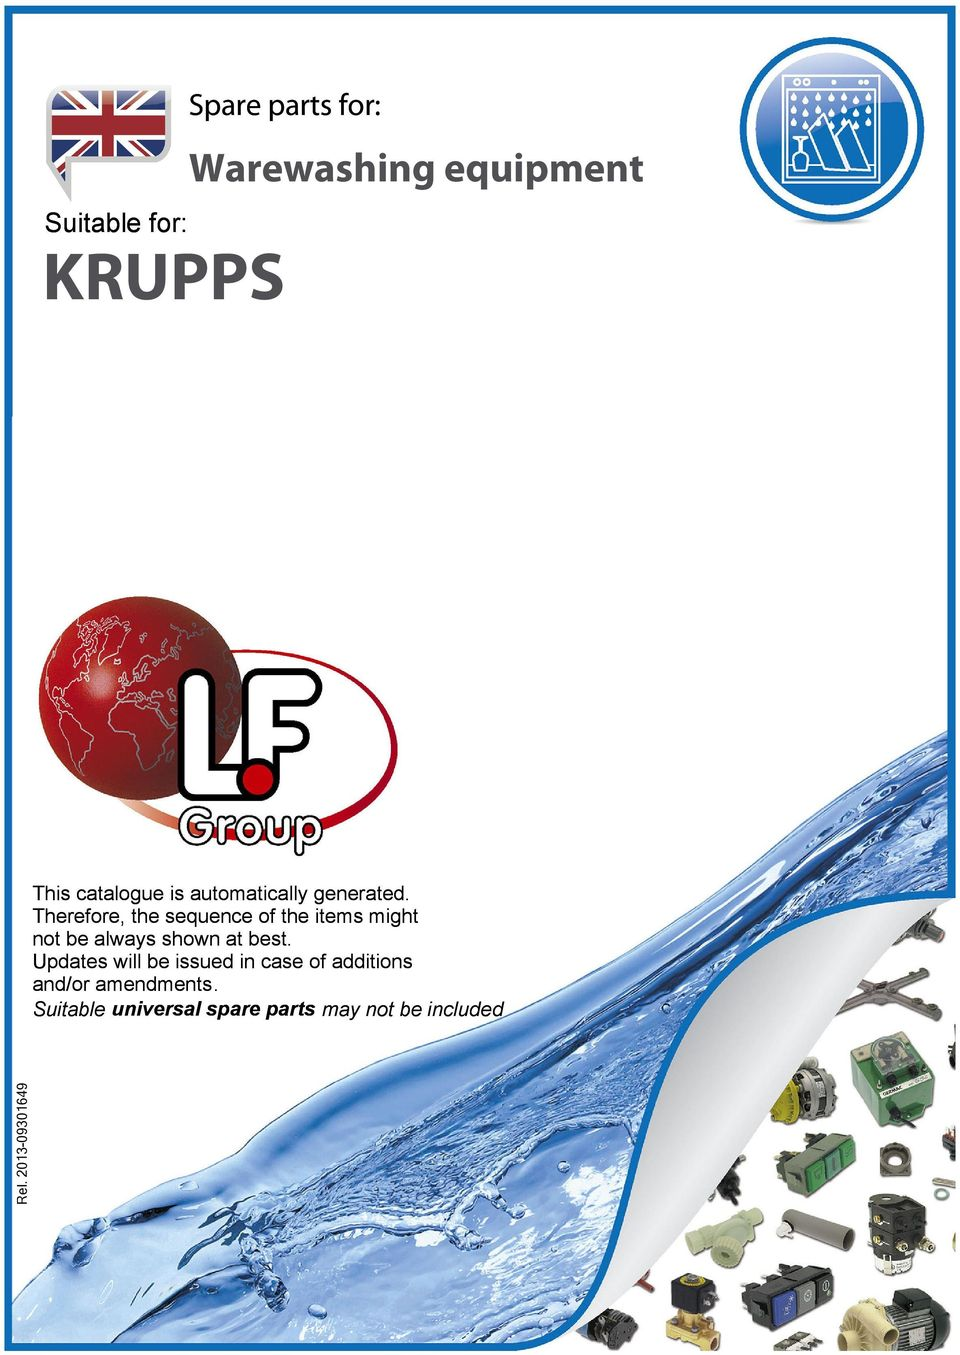 Krupps Warewashing Equipment Spare Parts For Suitable Pdf Universal Multiflex Frigidaire Electric Dryer Wiring Diagram Herefore The Sequence Of Items Might Not Be Always Shown At Best